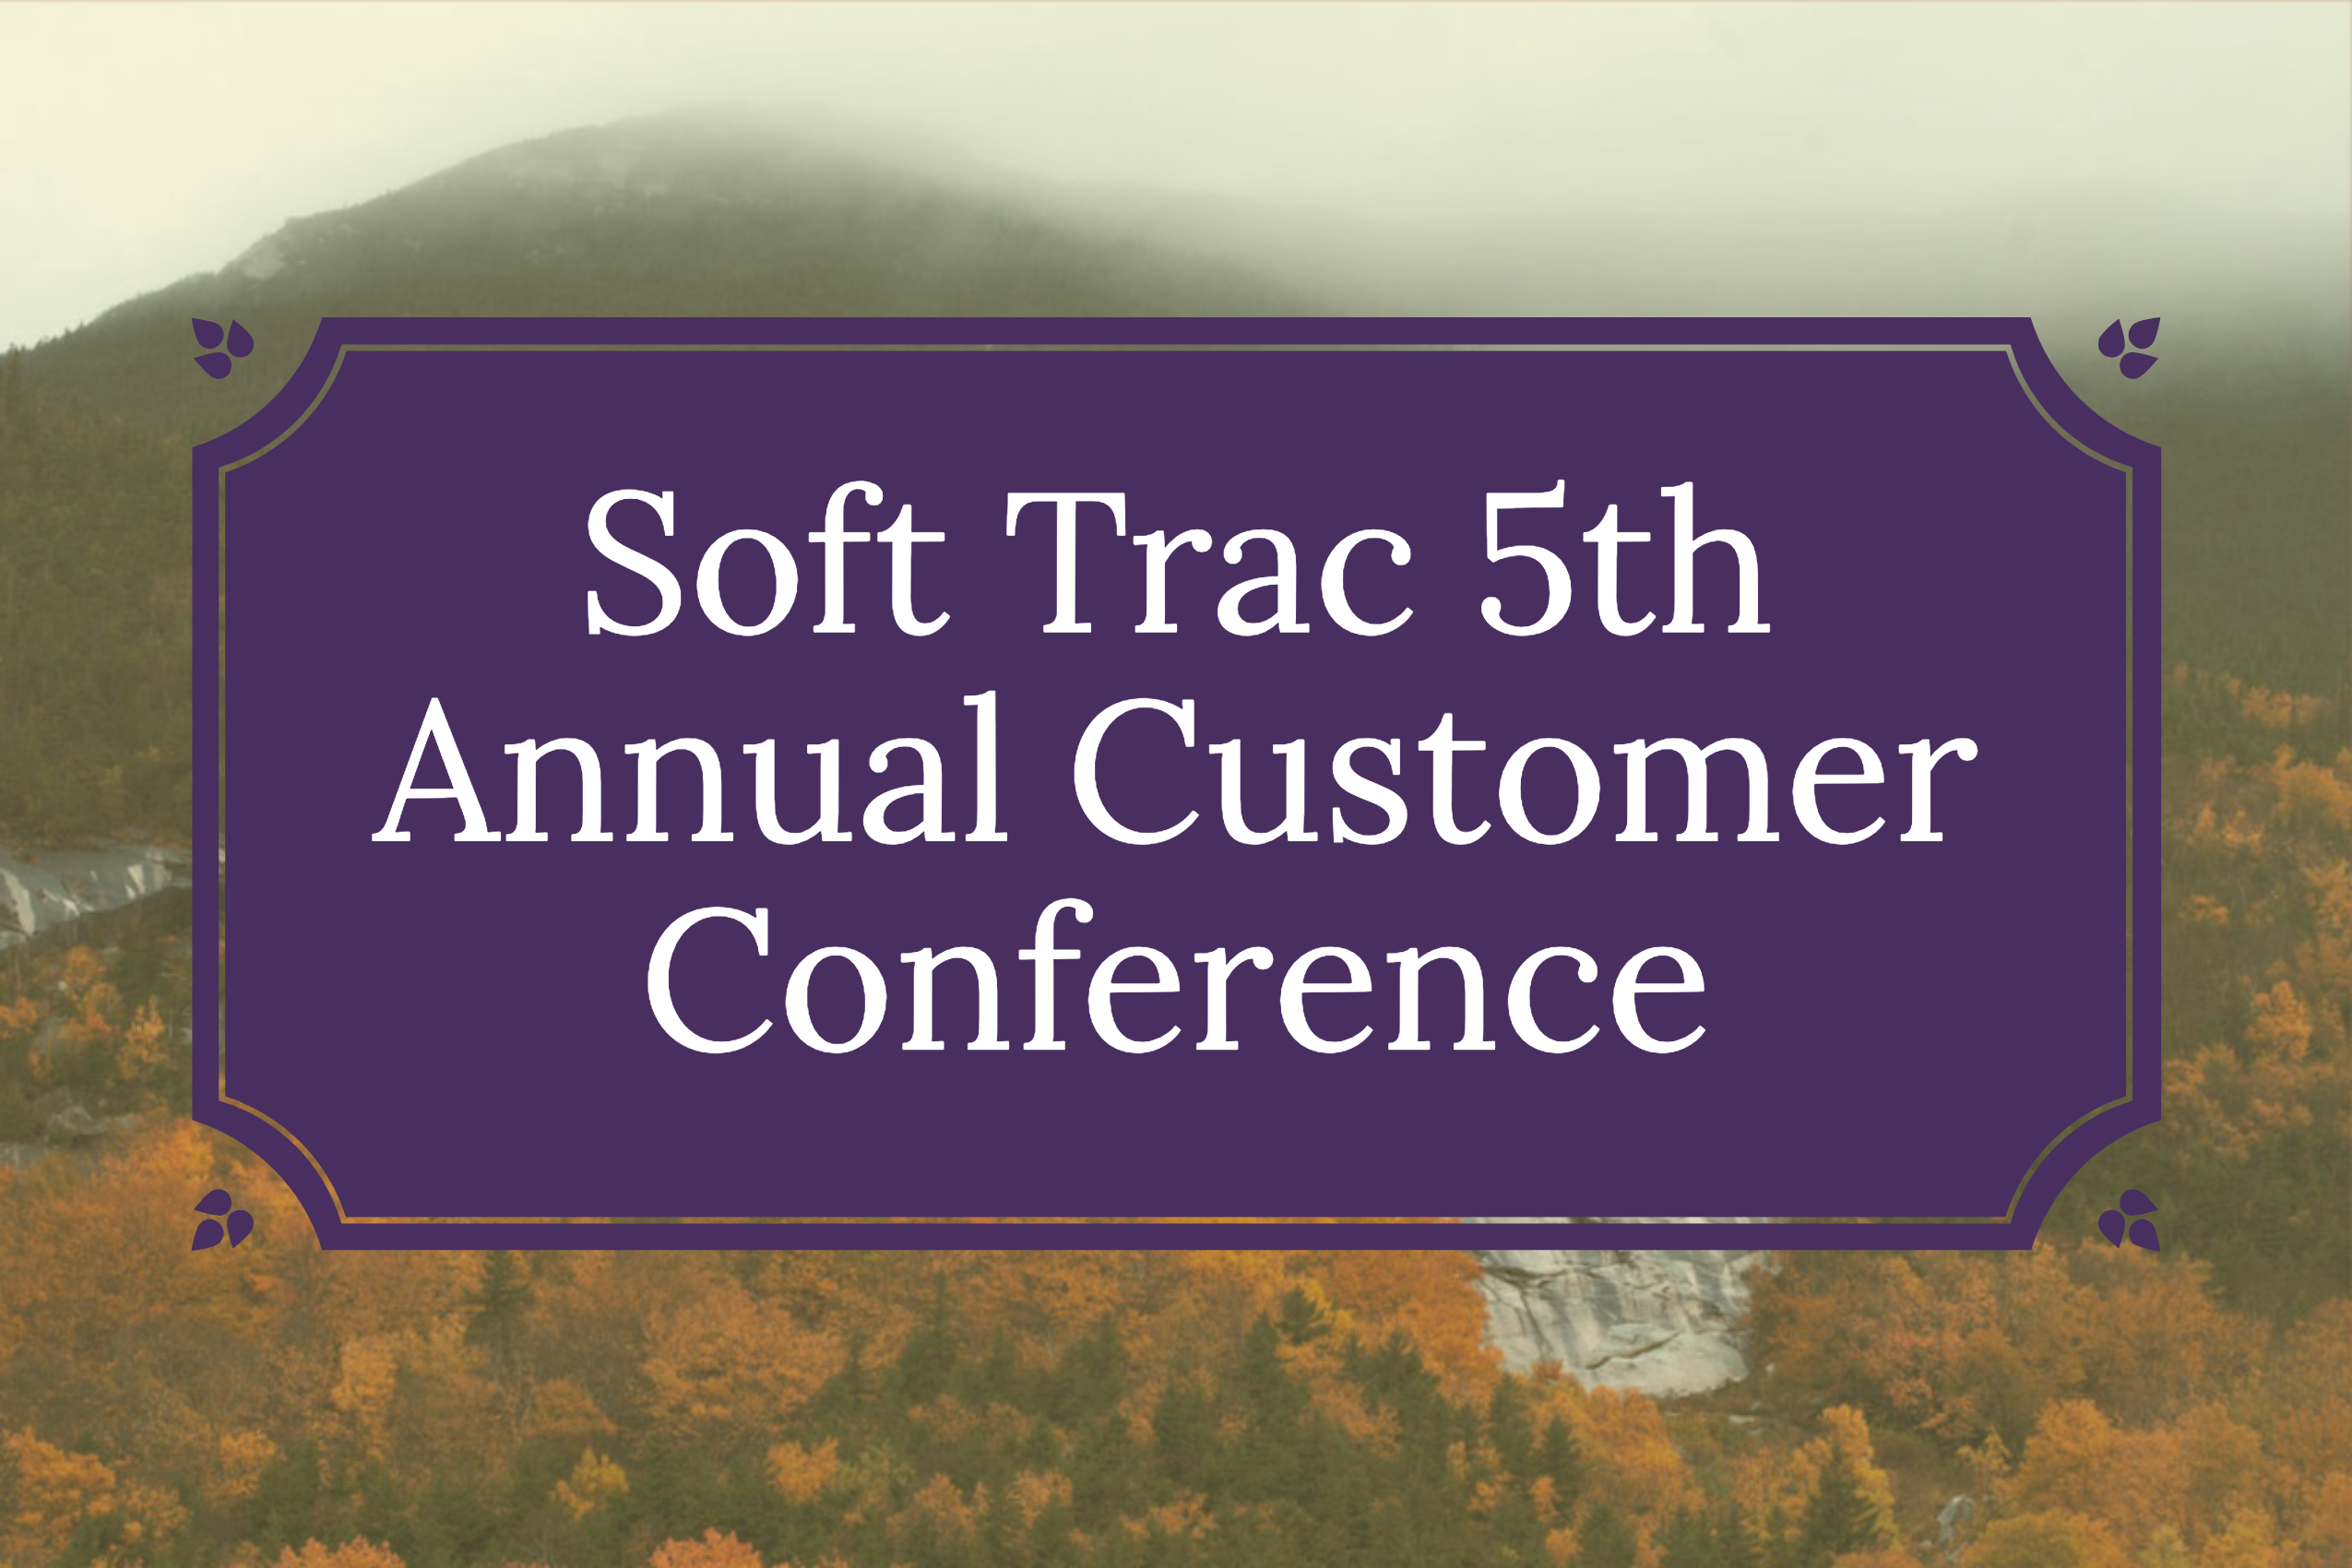 5th Annual Customer Conference